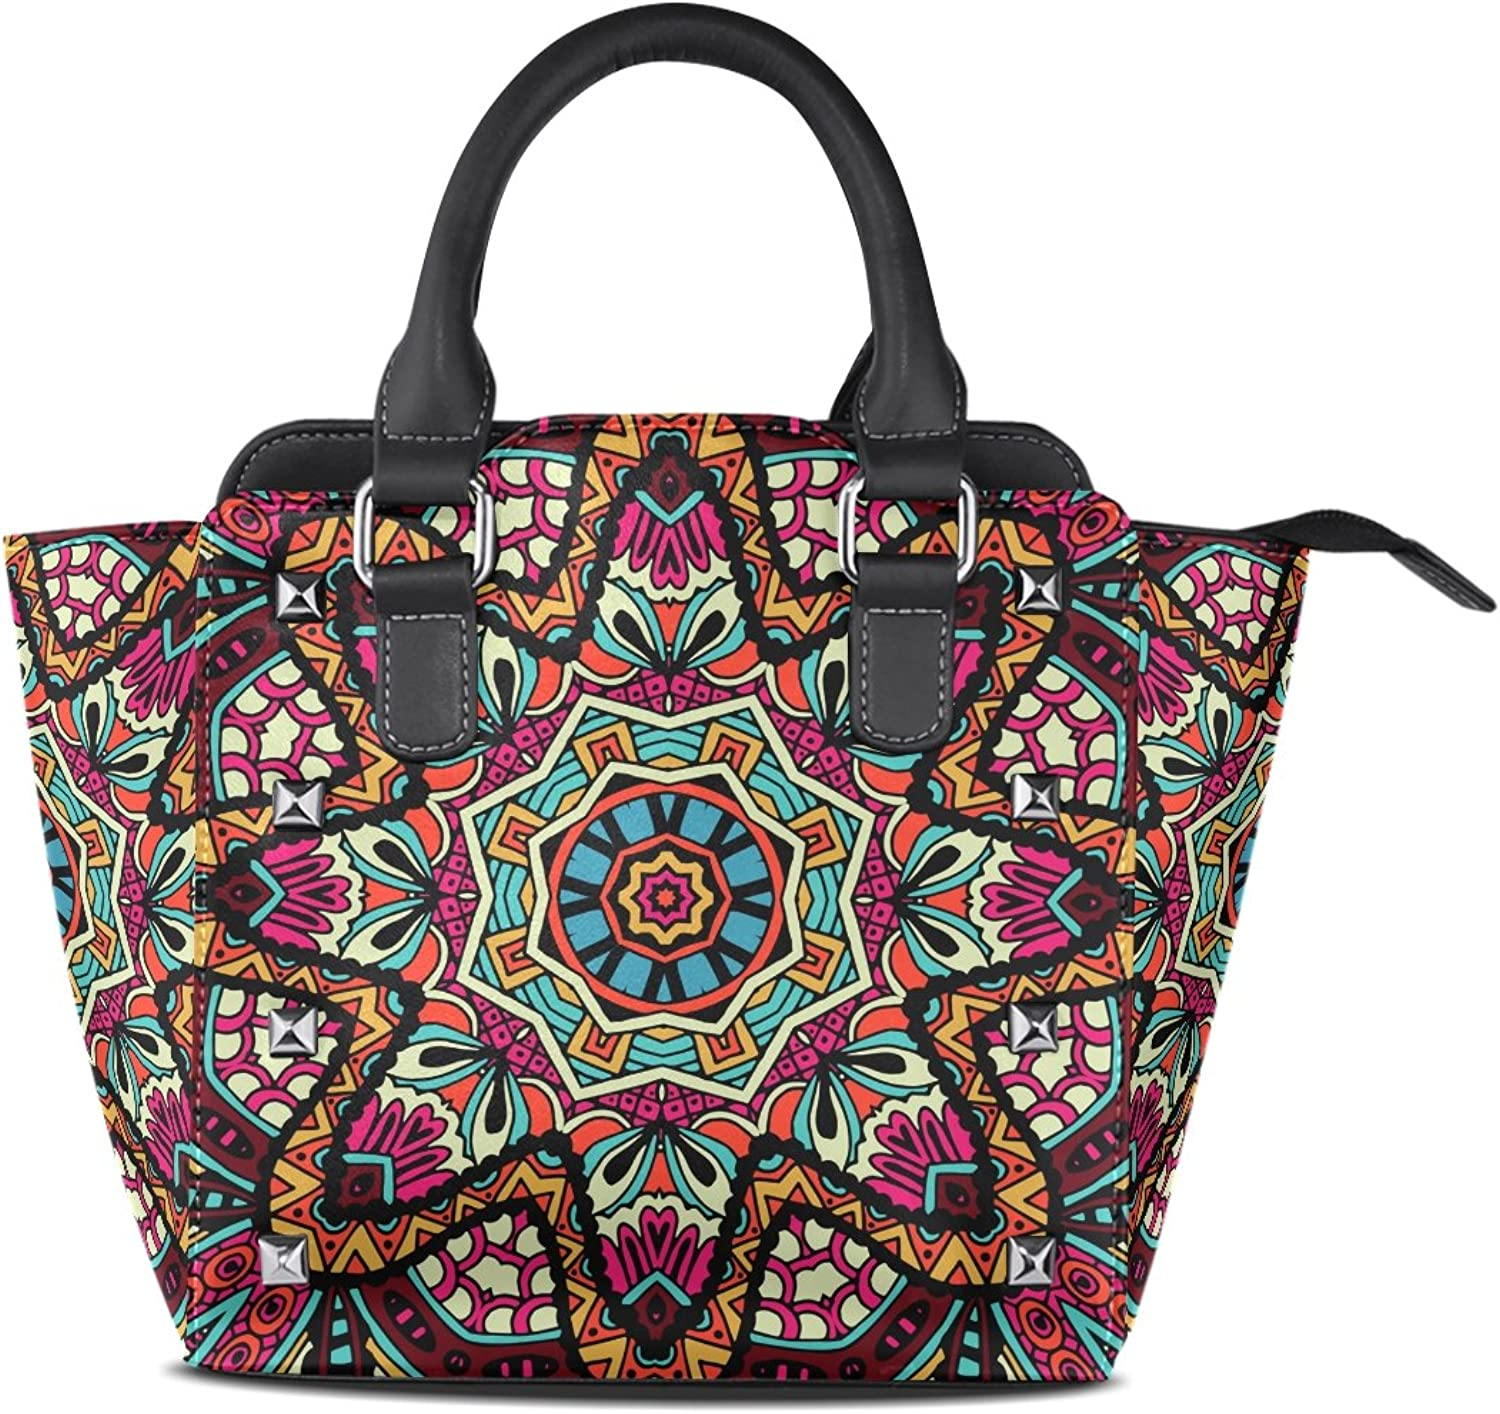 Sunlome Abstract Geometric Fashion Tribal Ethnic Floral Print Handbags Women's PU Leather Top-Handle Shoulder Bags